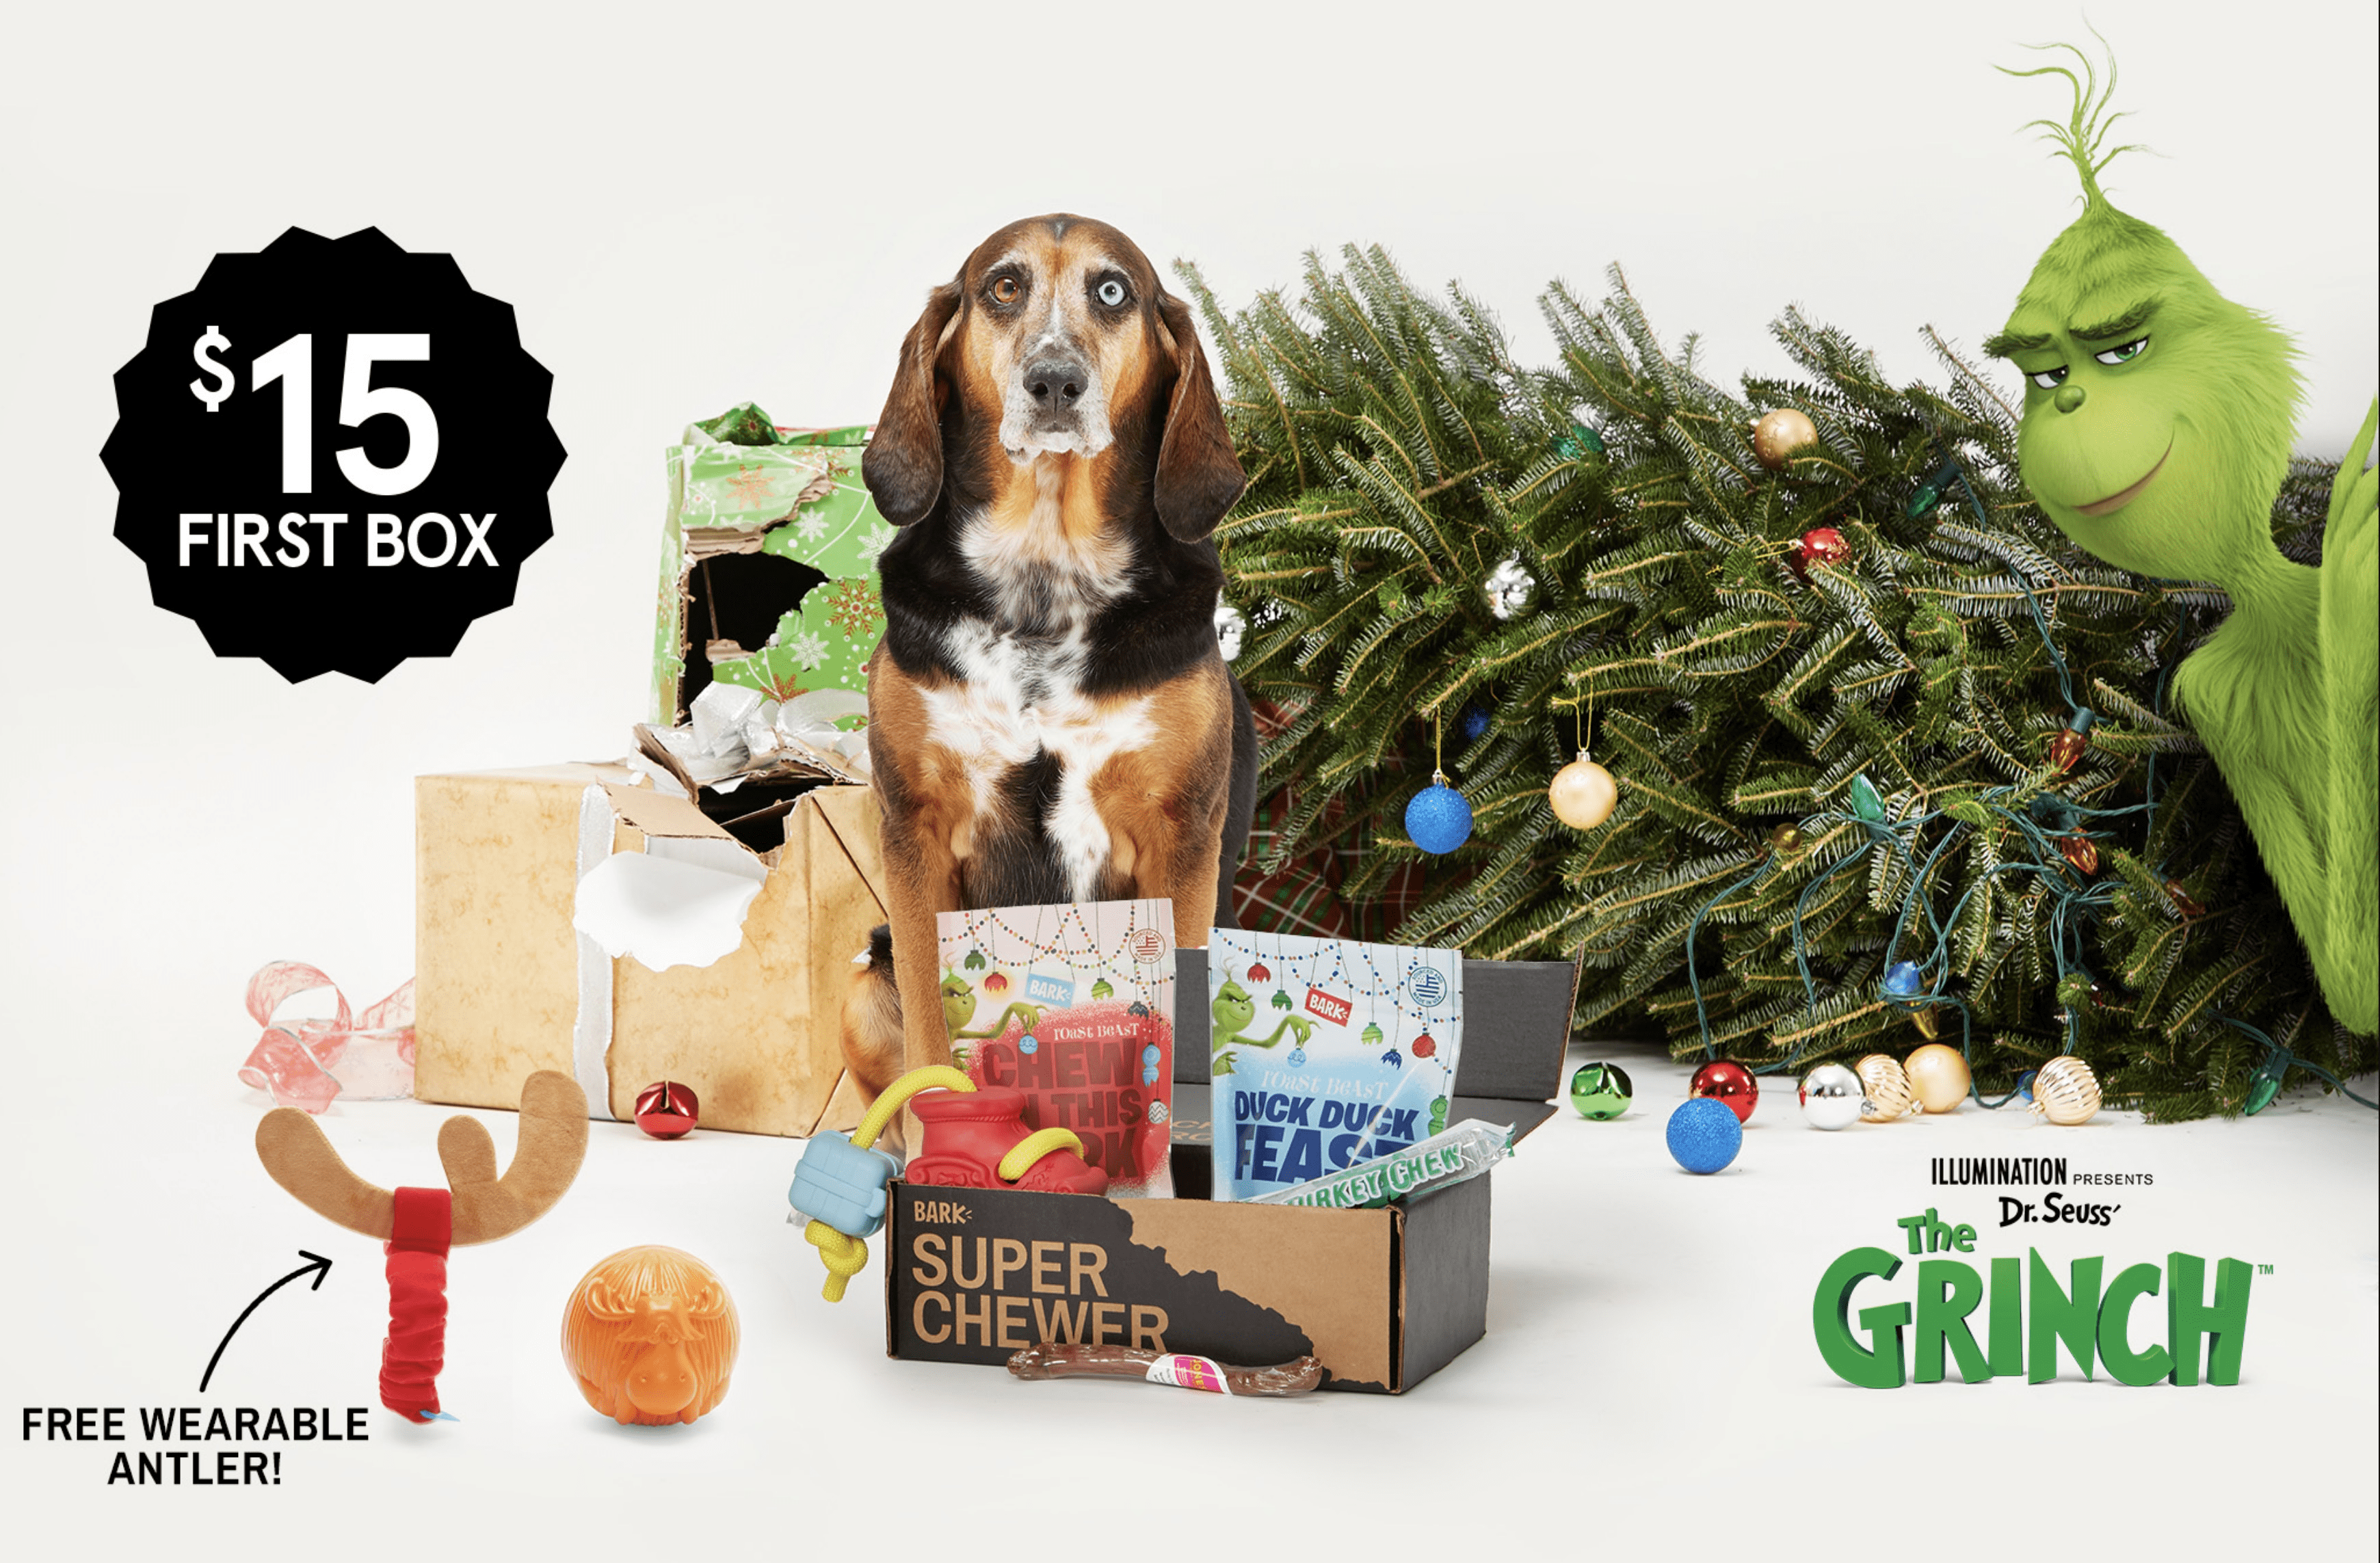 BarkBox Super Chewer Coupon: Get 50% Off Your First Month! LAST CALL!